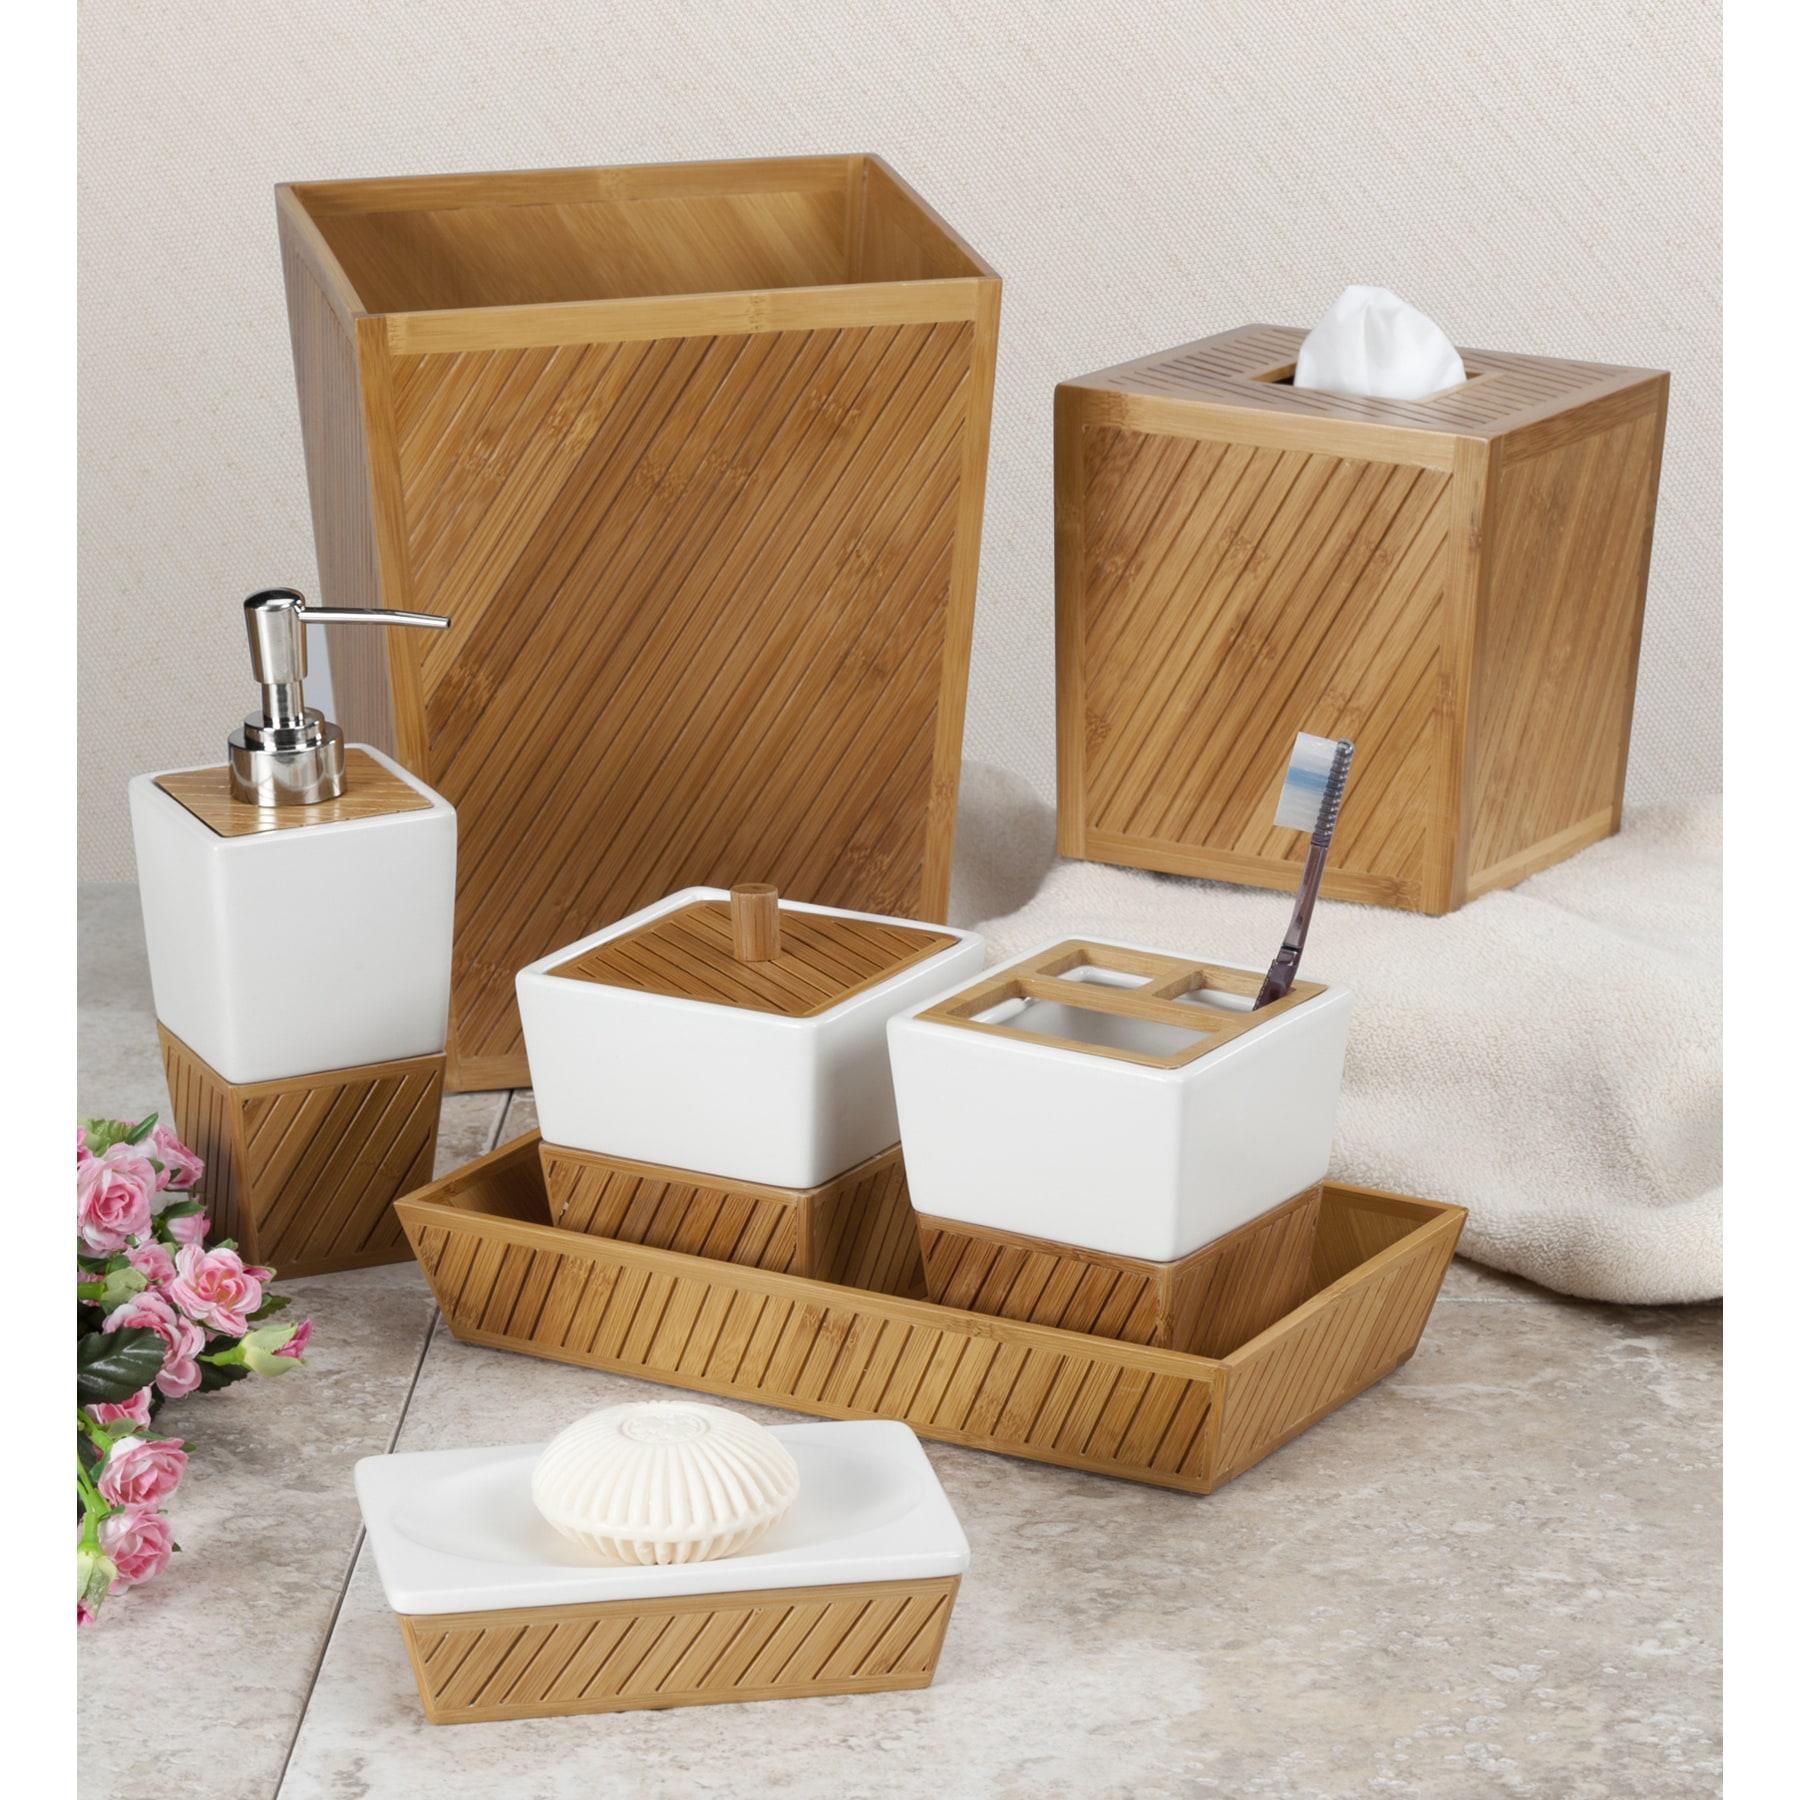 Shop White Ceramic Bamboo Bathroom Accessories On Sale Overstock 8883505